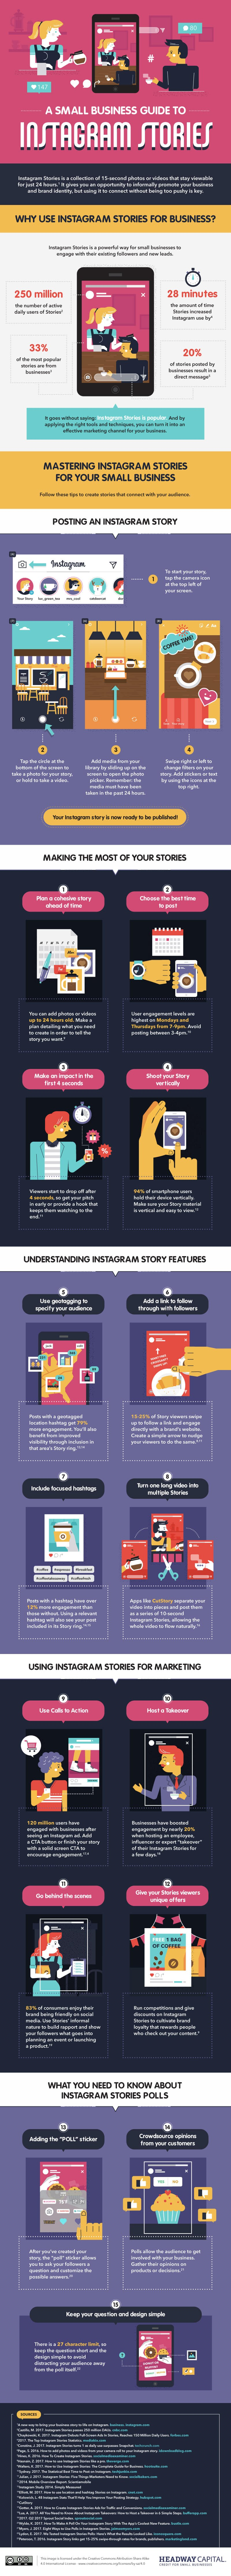 A Small Business Guide to Instagram Stories